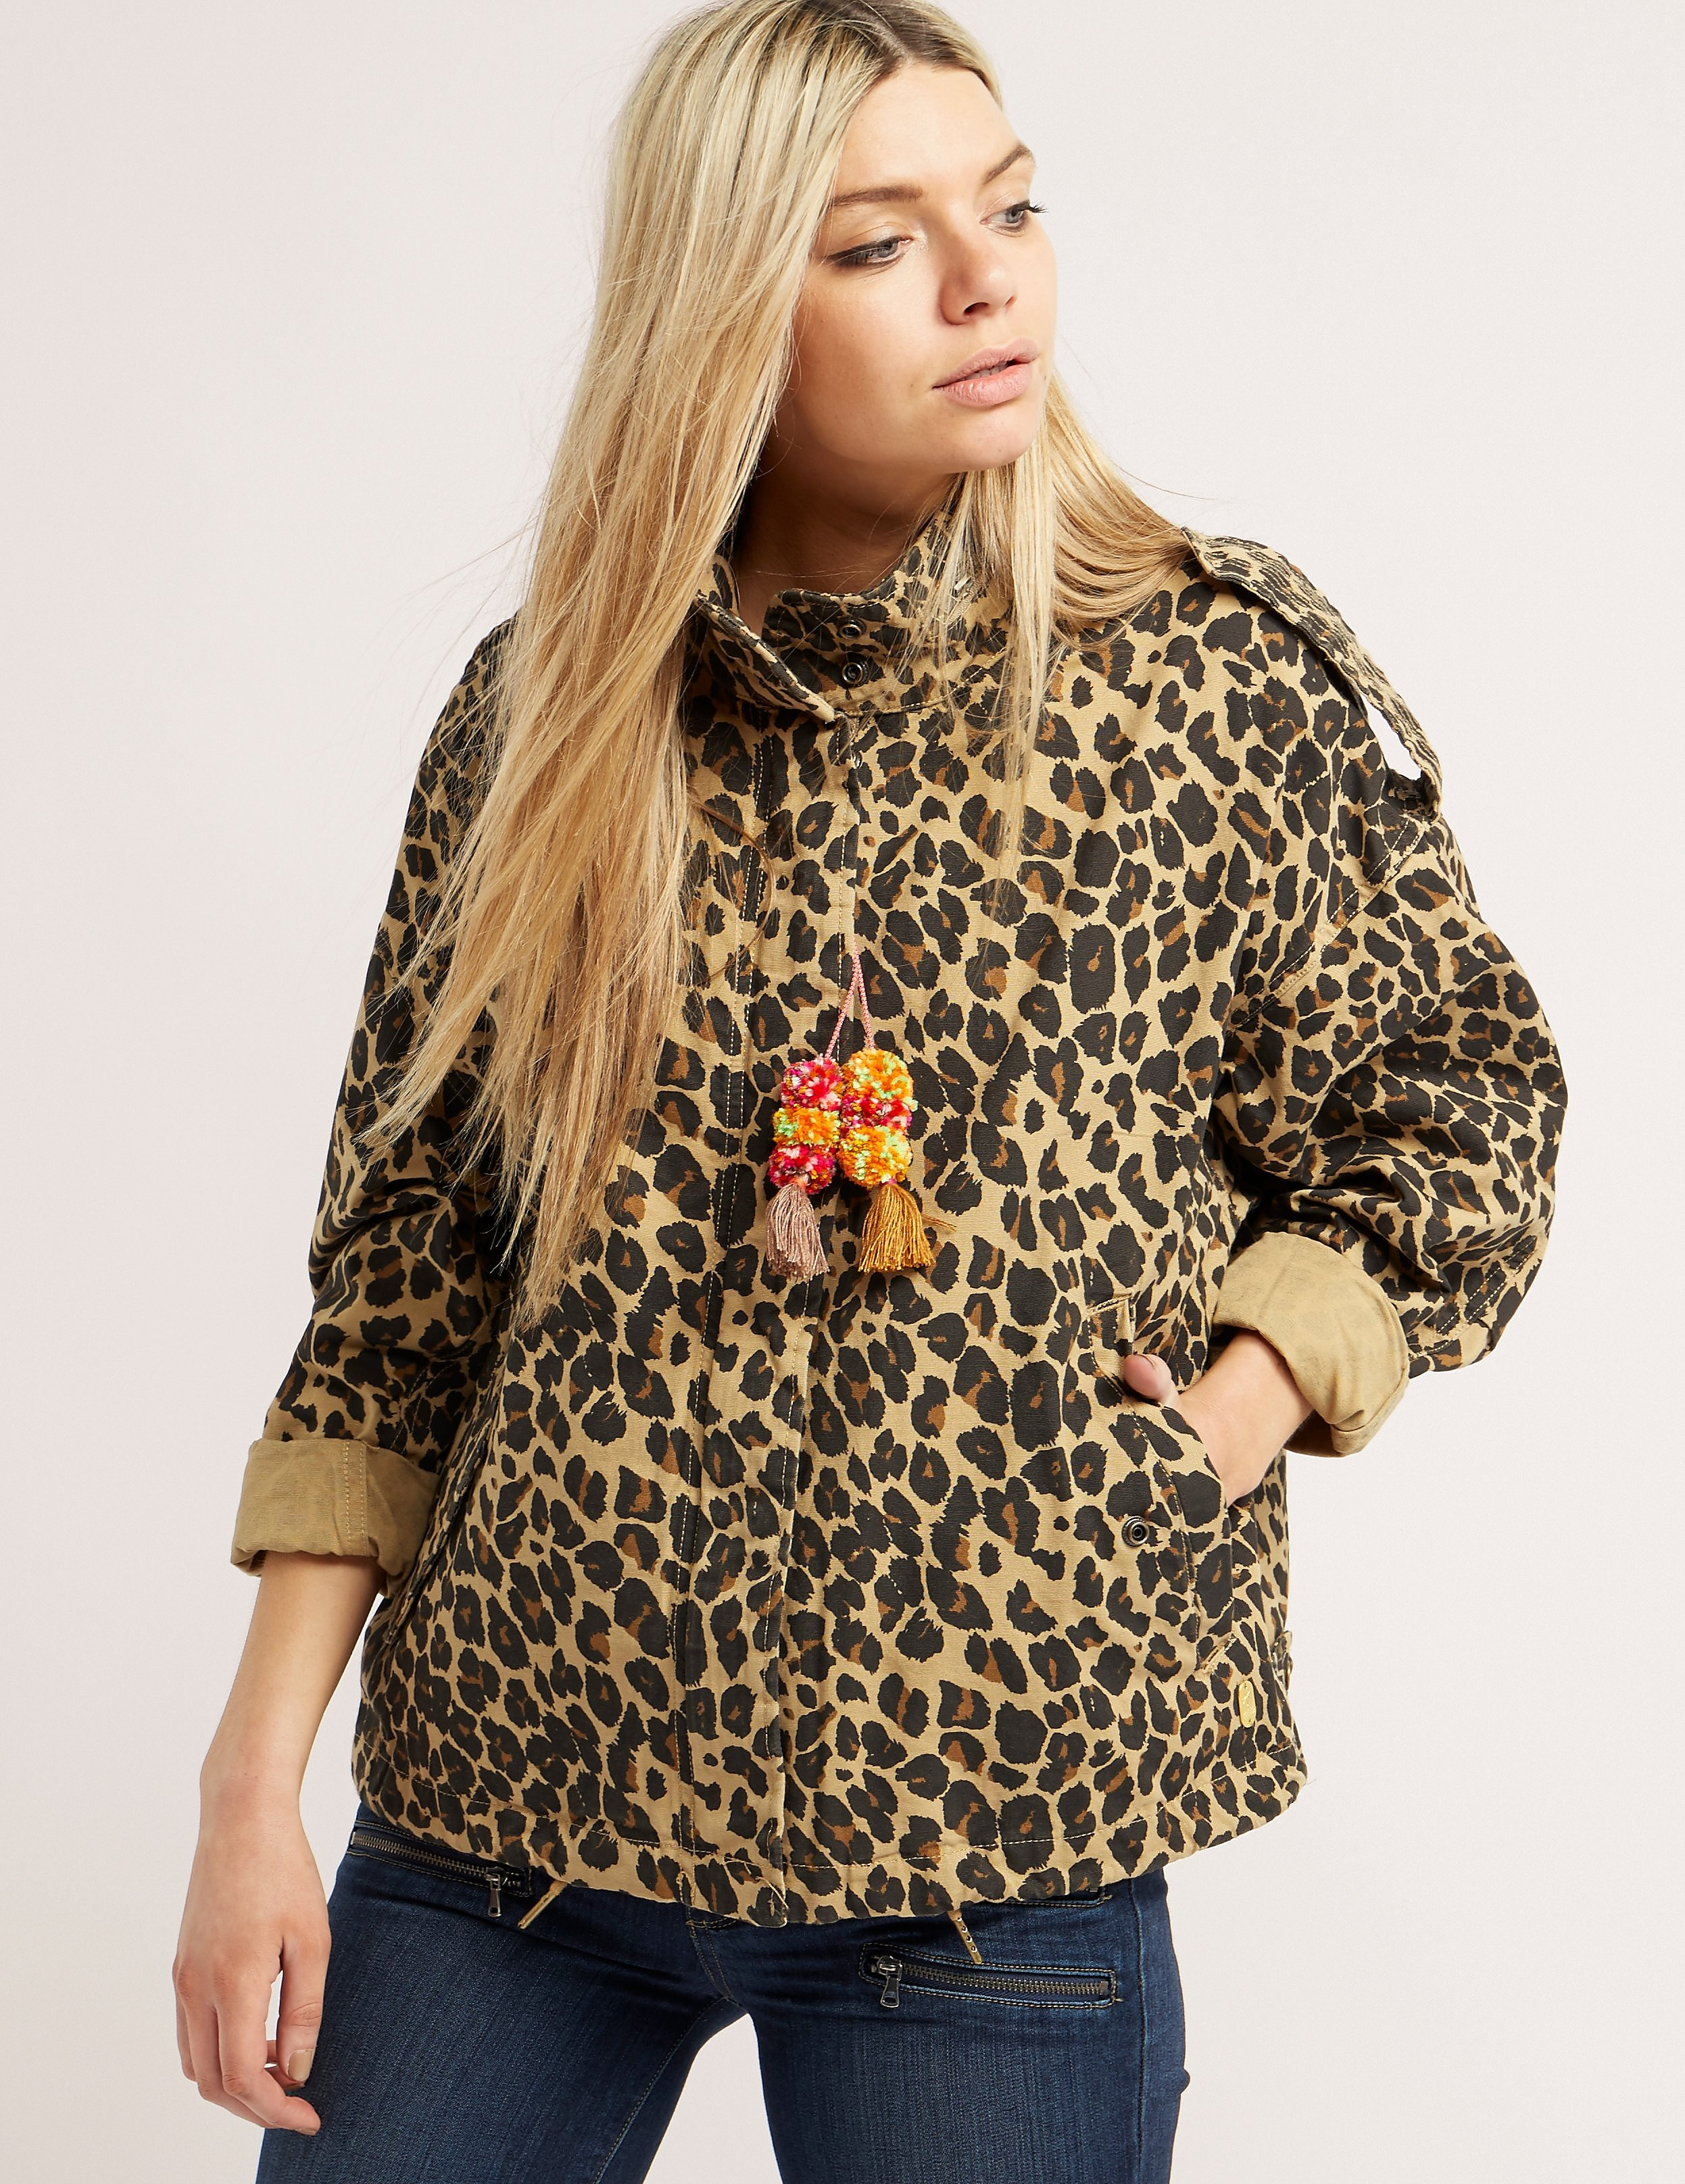 Maison Scotch Leopard Jacket